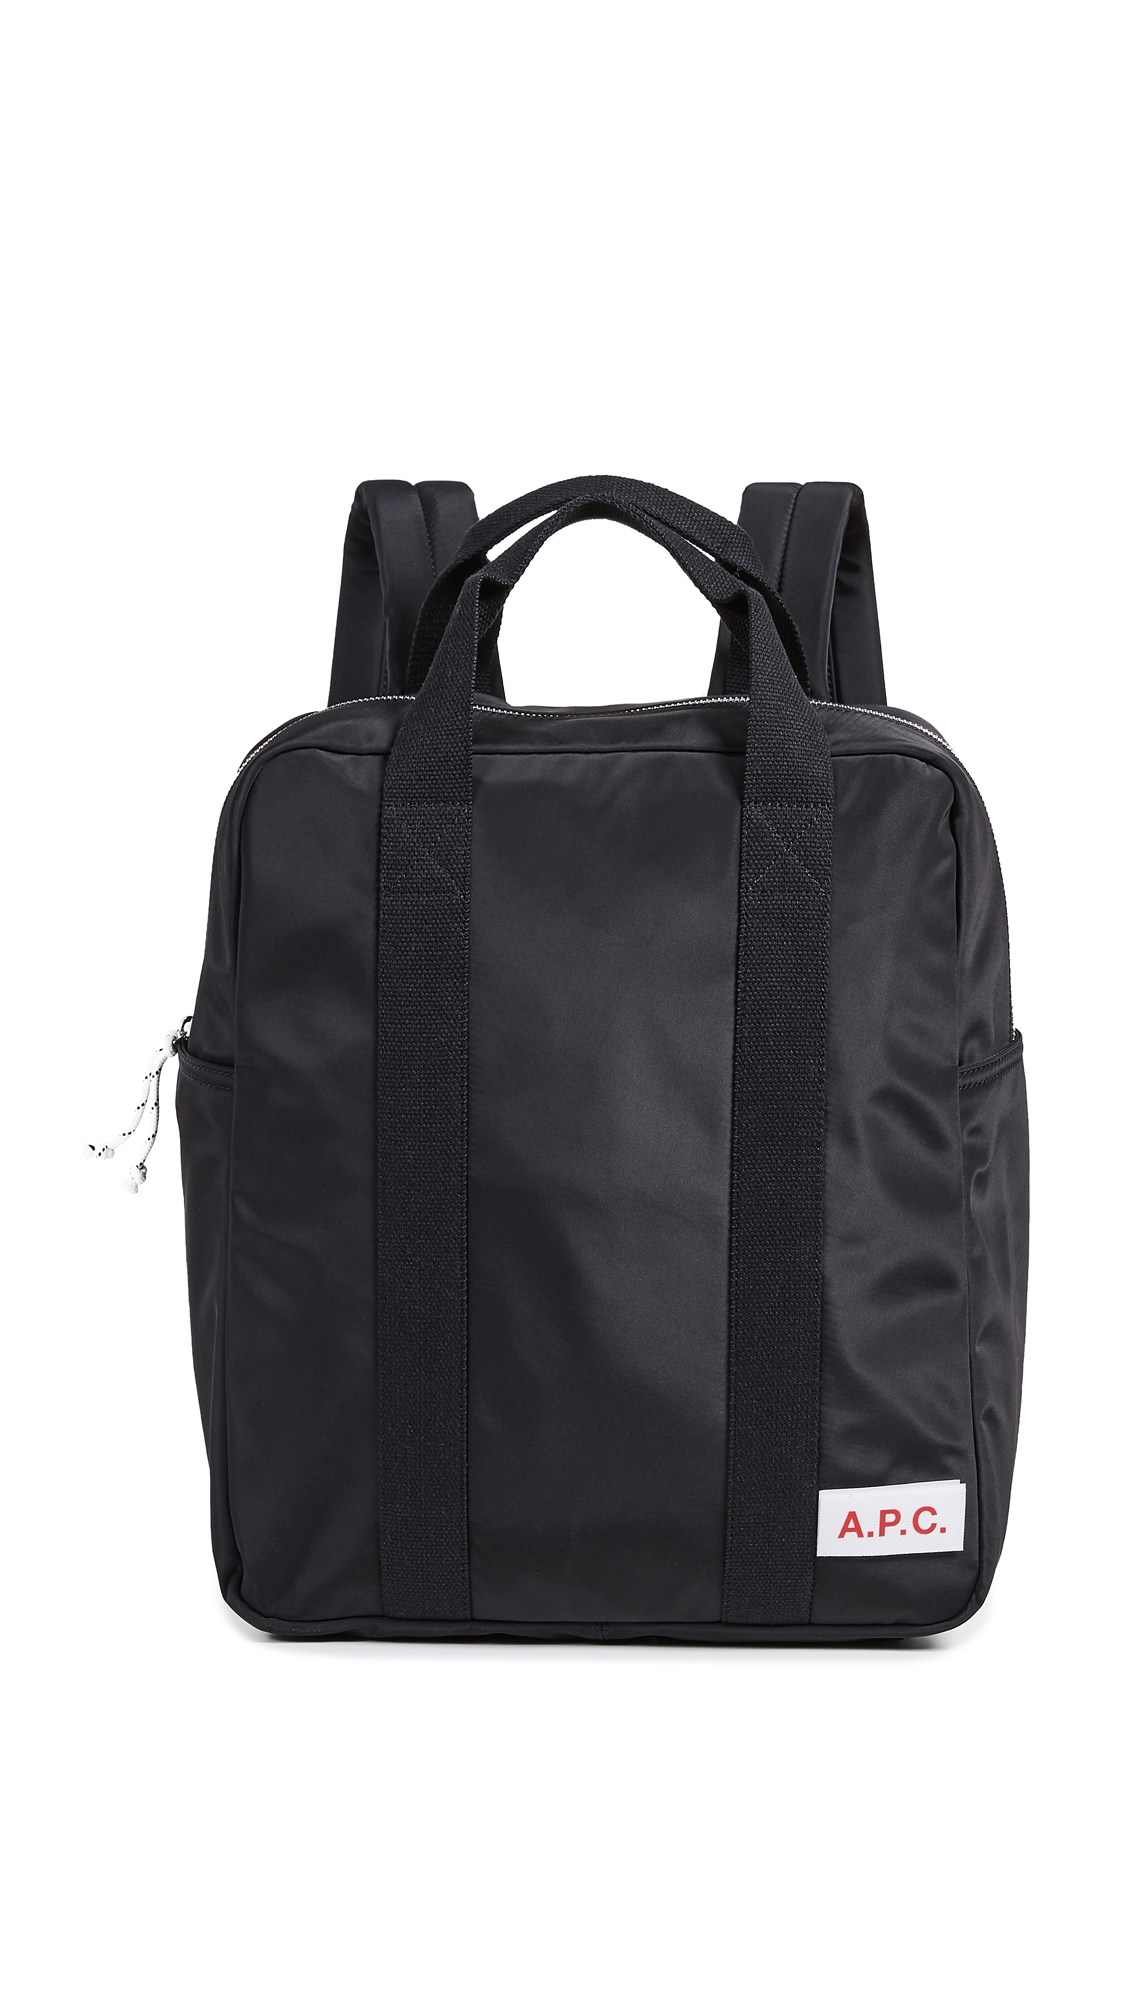 A.p.c. Bags PROTECTION RUCKSACK